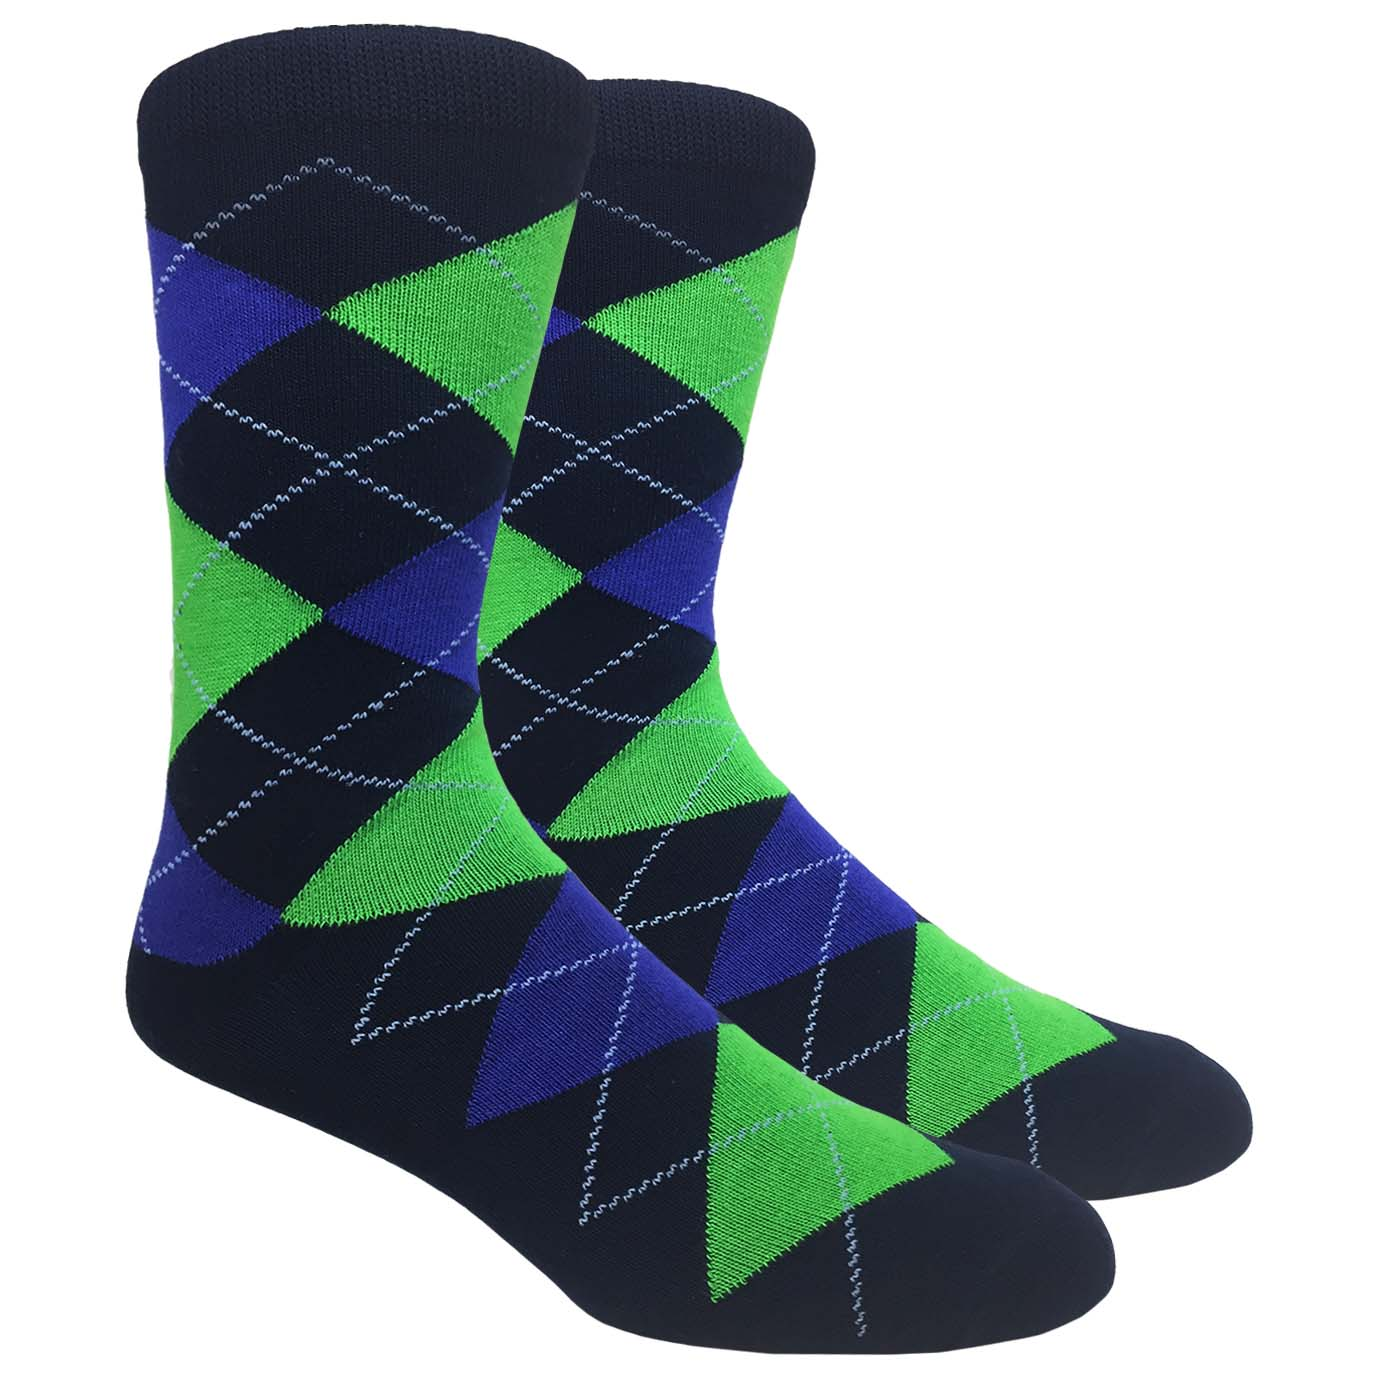 FineFit Black Label Argyle Socks - Navy 1